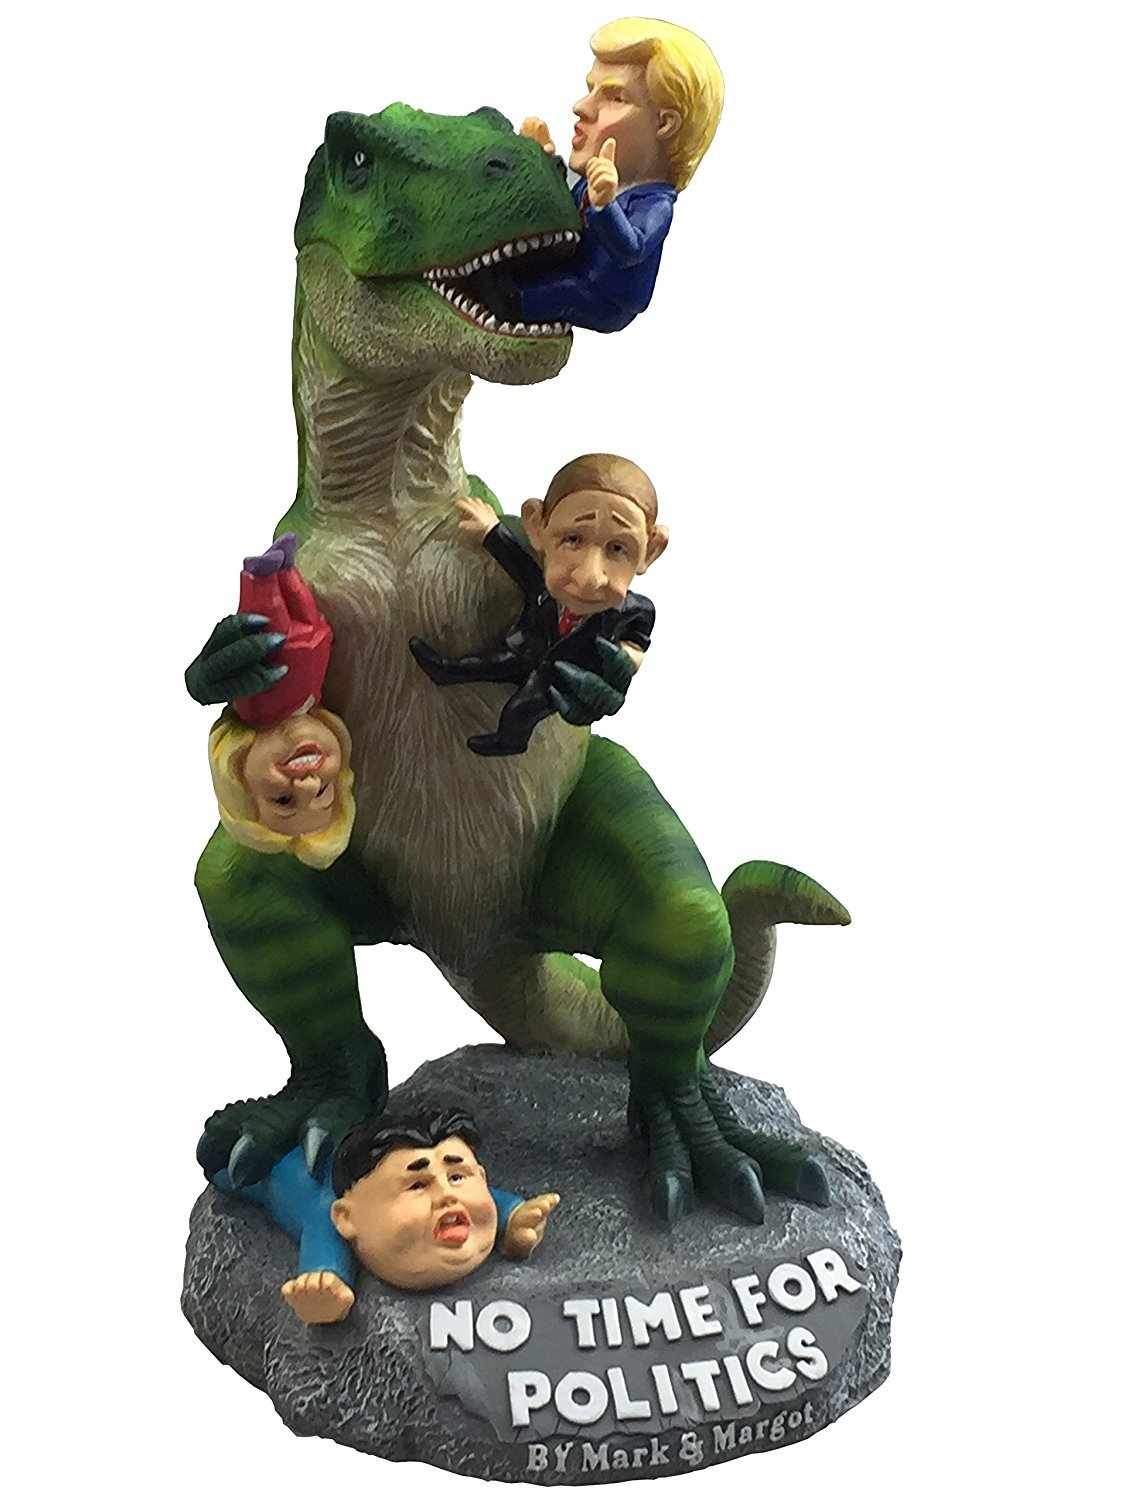 By Mark & Margot Garden Statue Donald Trump President Funny Décor - T-rex Dinosaur Enjoying Delicious Hillary Kim & Putin – Great Novelty Gag Gift –Best Indoor Outdoor Home Office Lawn or Patio